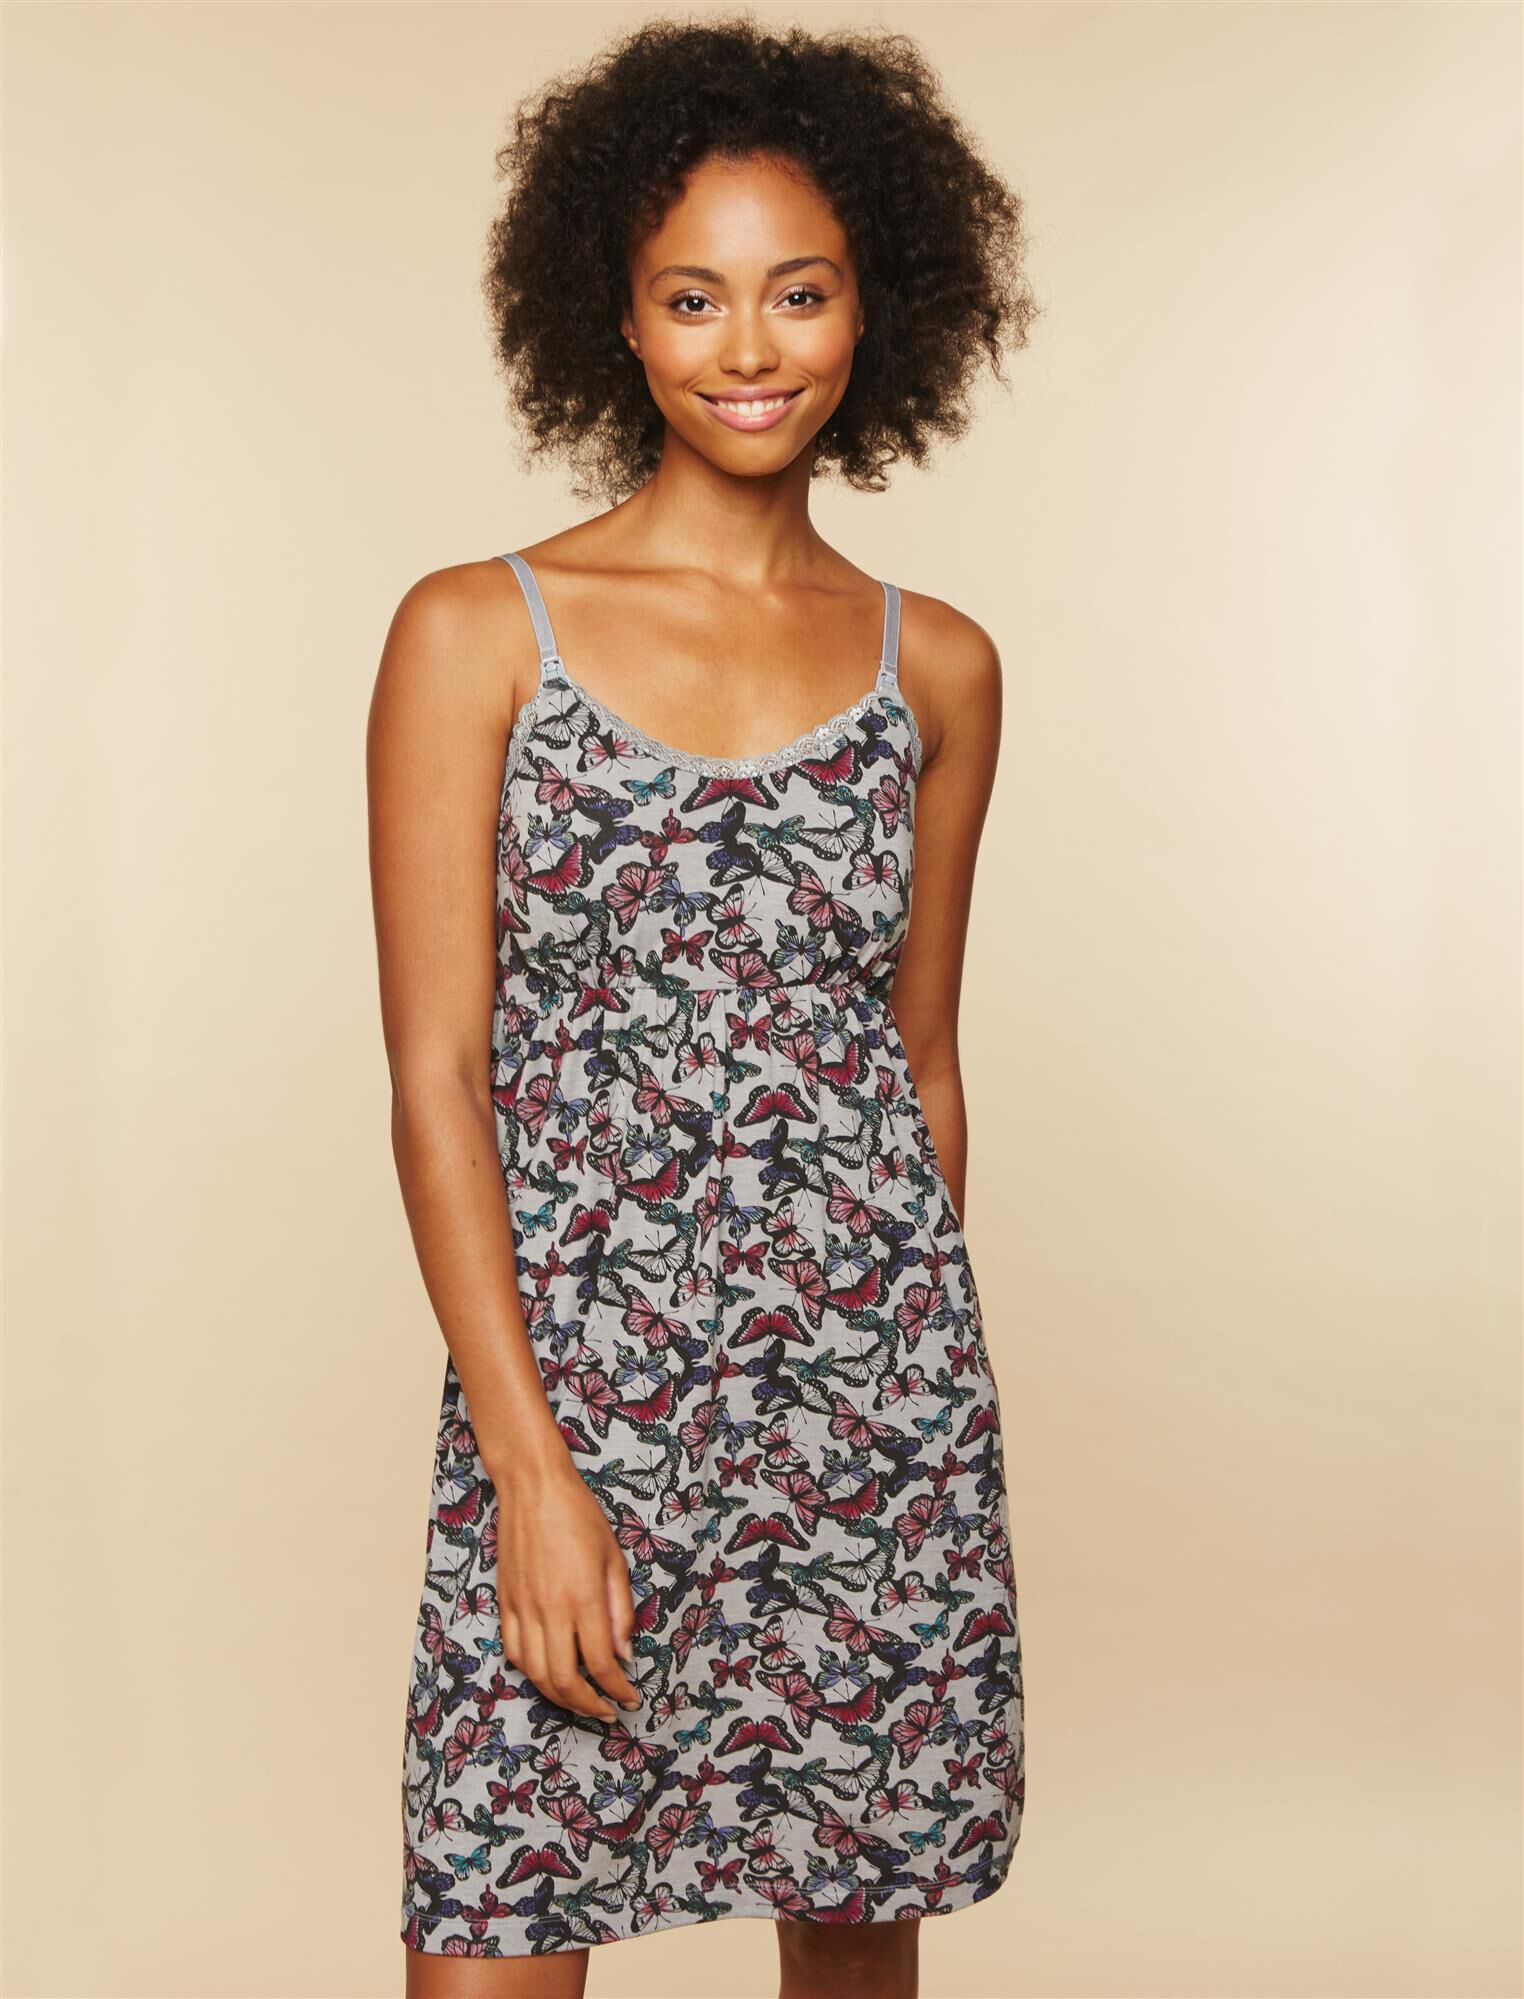 Bump In The Night Nursing Nightgown- Butterfly